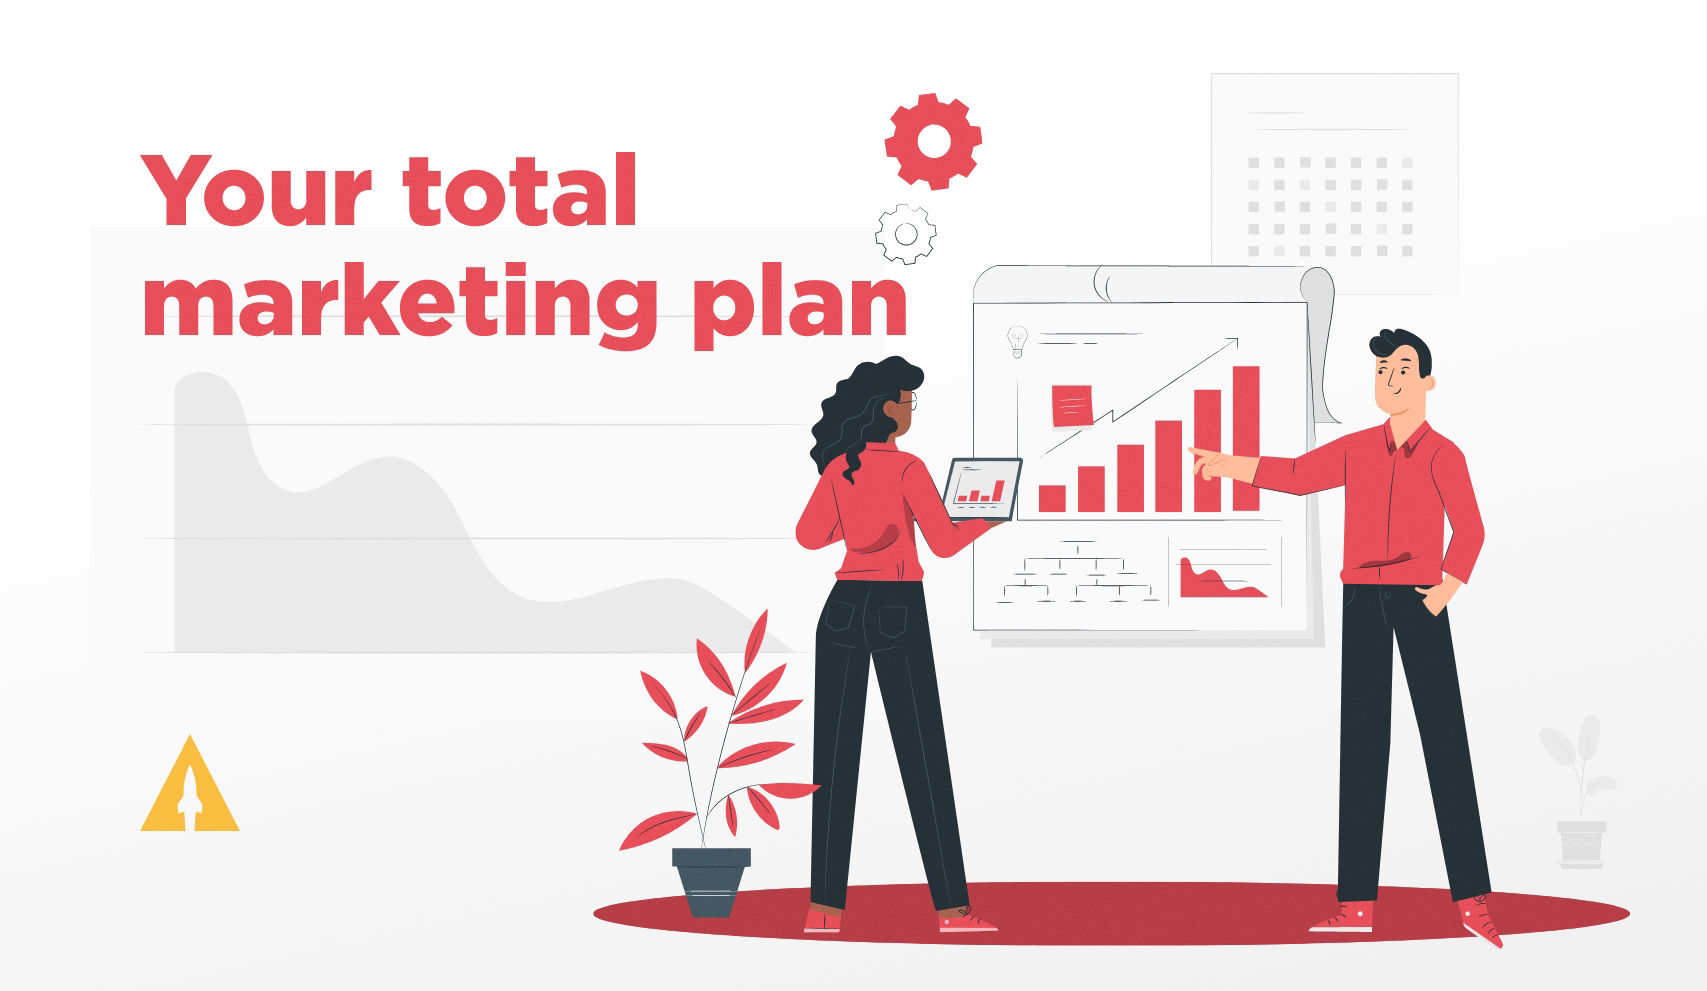 Your total marketing plan